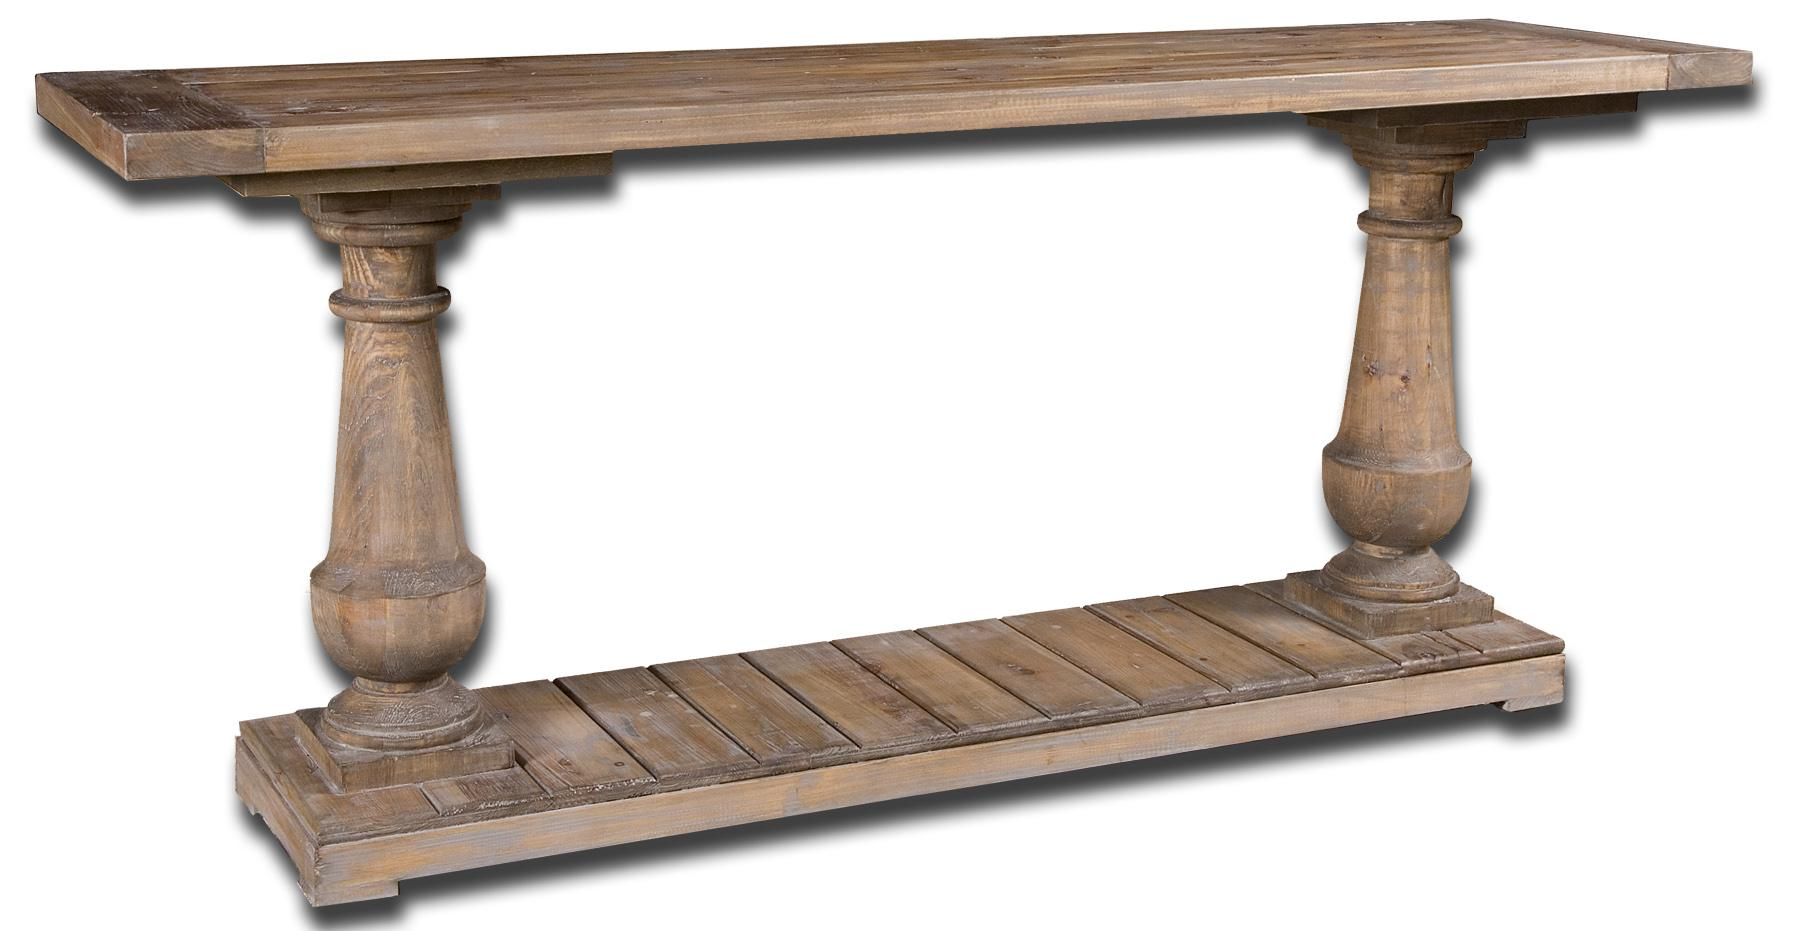 Accent Furniture - Occasional Tables Stratford Console by Uttermost at Upper Room Home Furnishings